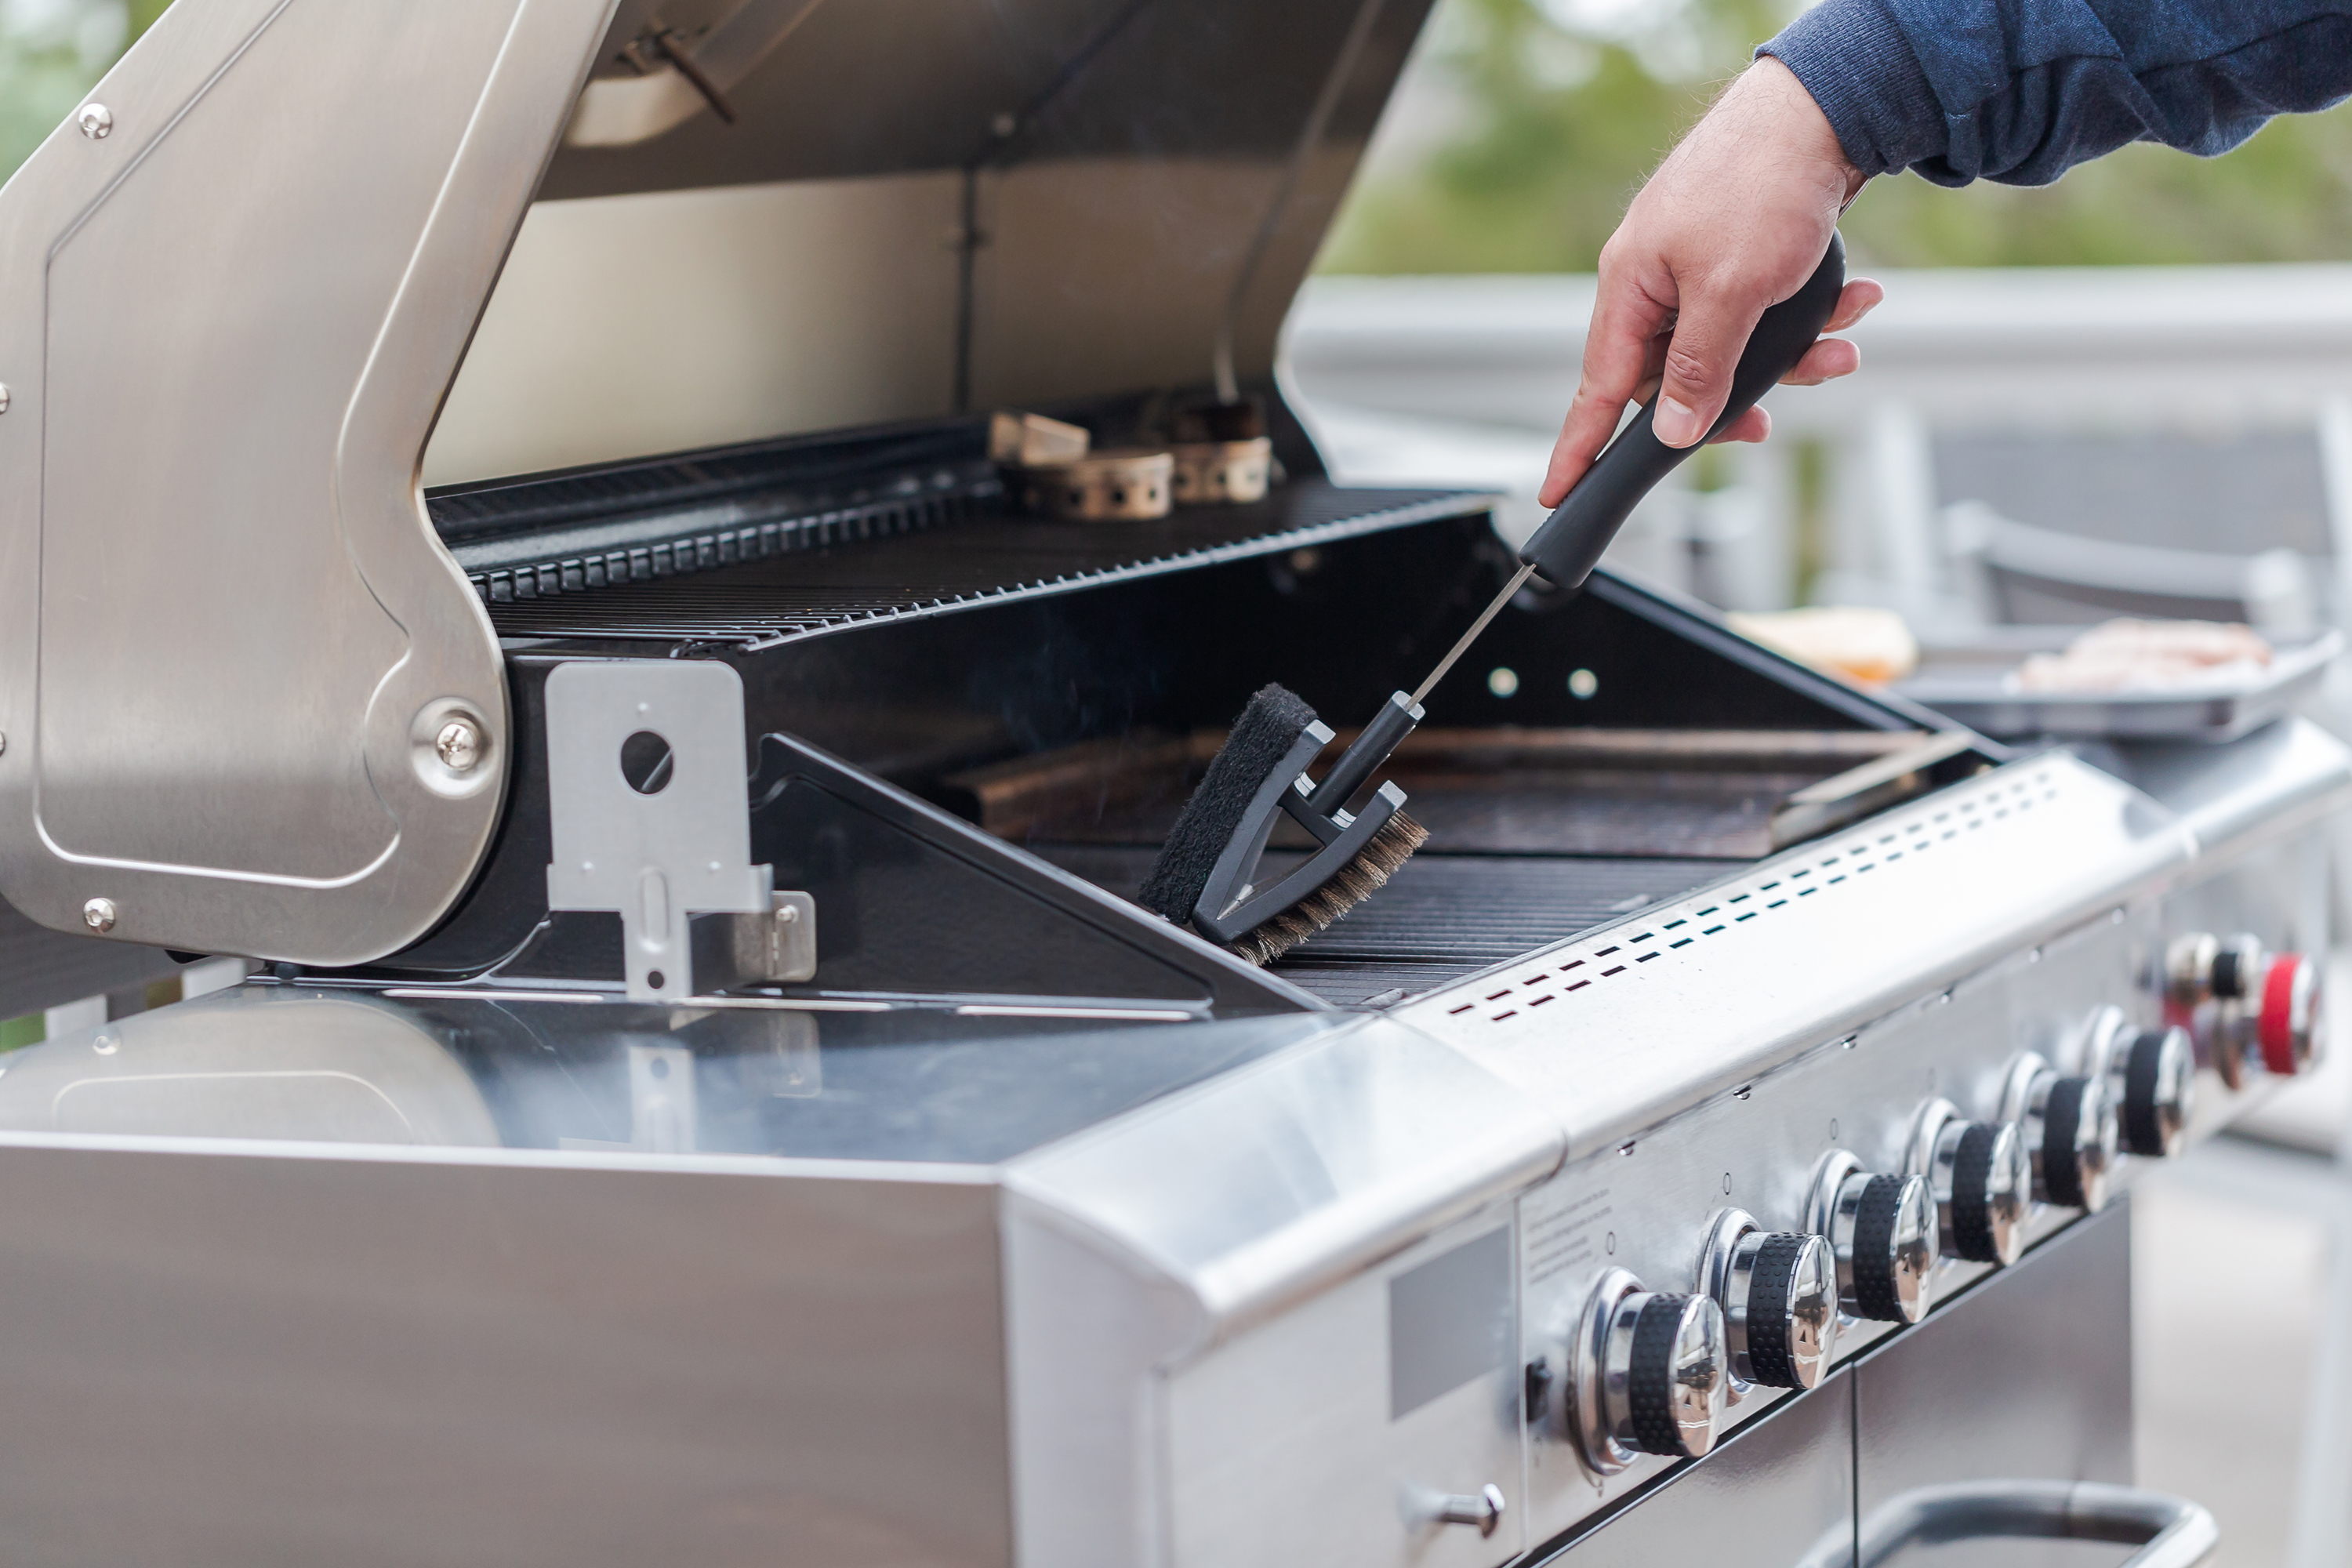 Man cleaning outdoor gas grill with brush.